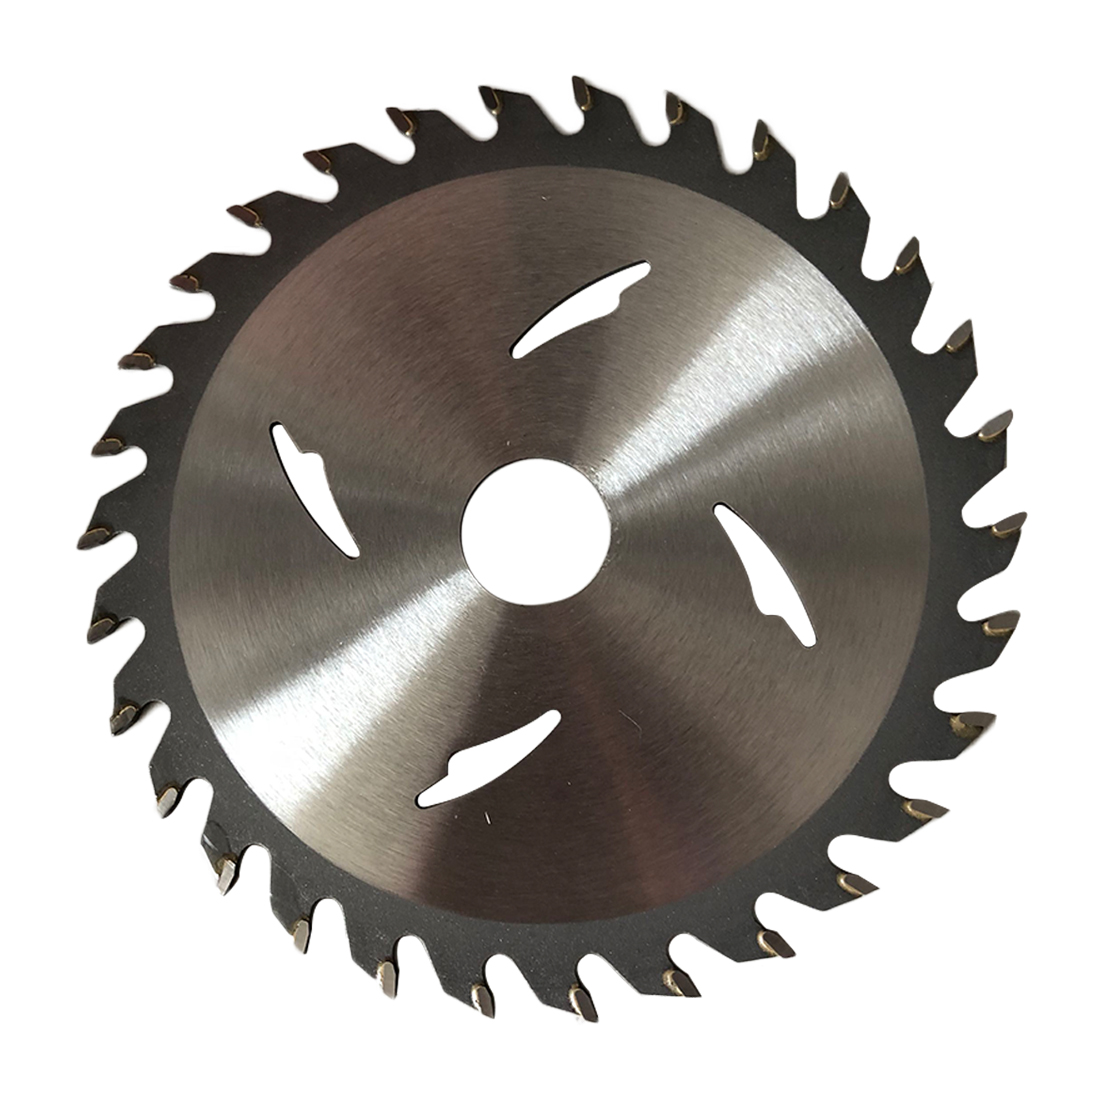 1 Circular Saw Blade 5-1//2in Durable Steel Cutting Plywood Power Tool Silver US